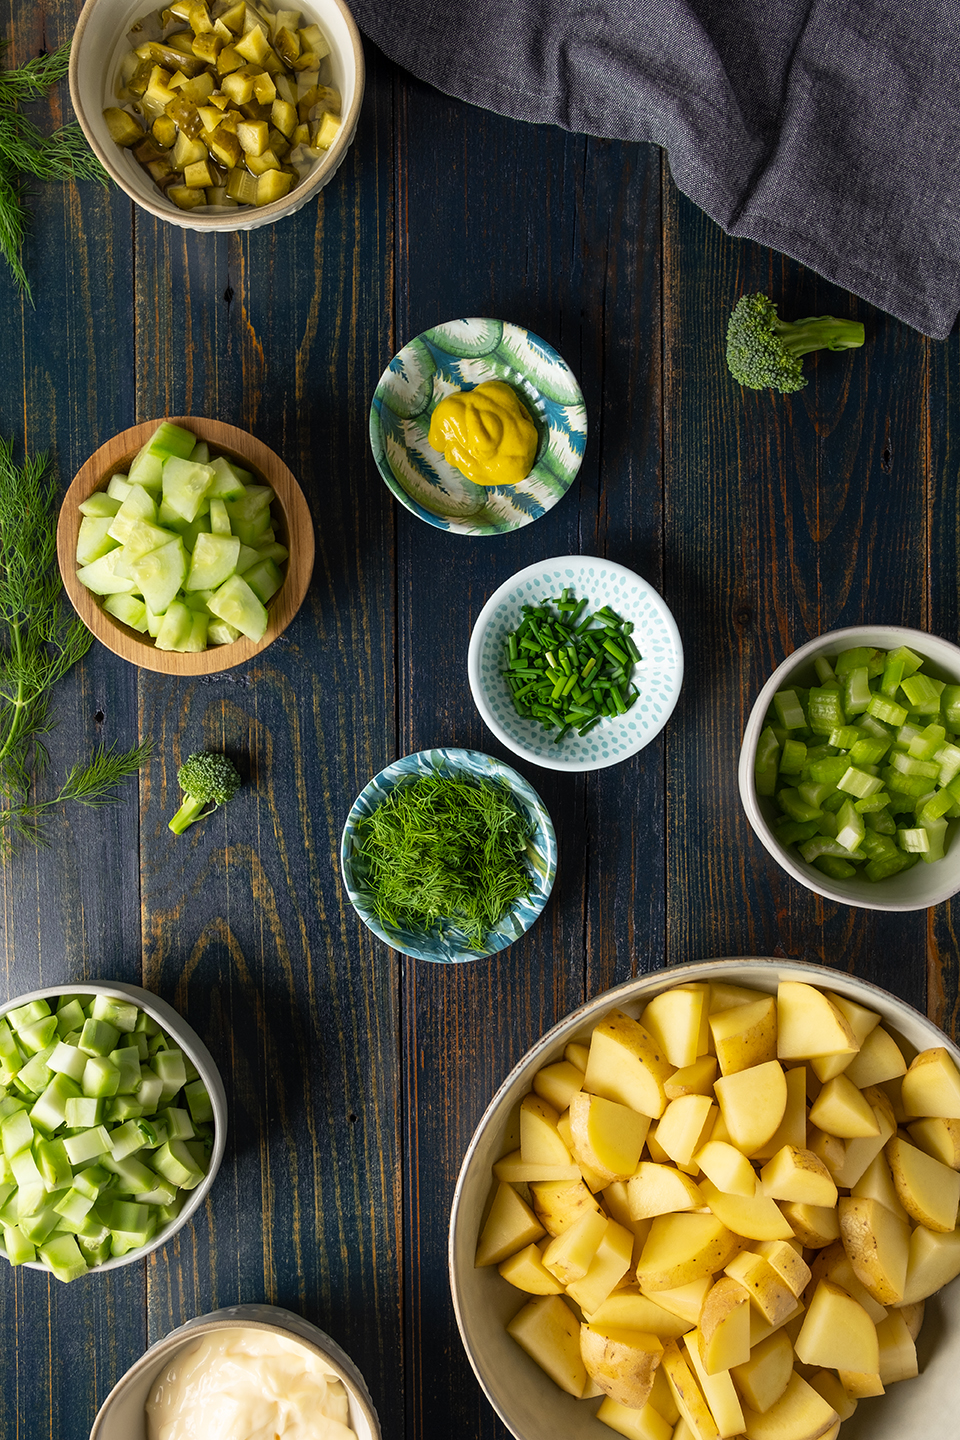 Cubed potatoes, celery, broccoli stems, dill, cucumber, mustard, chive and pickles on a rustic blue wooded background.  Navy napkin.